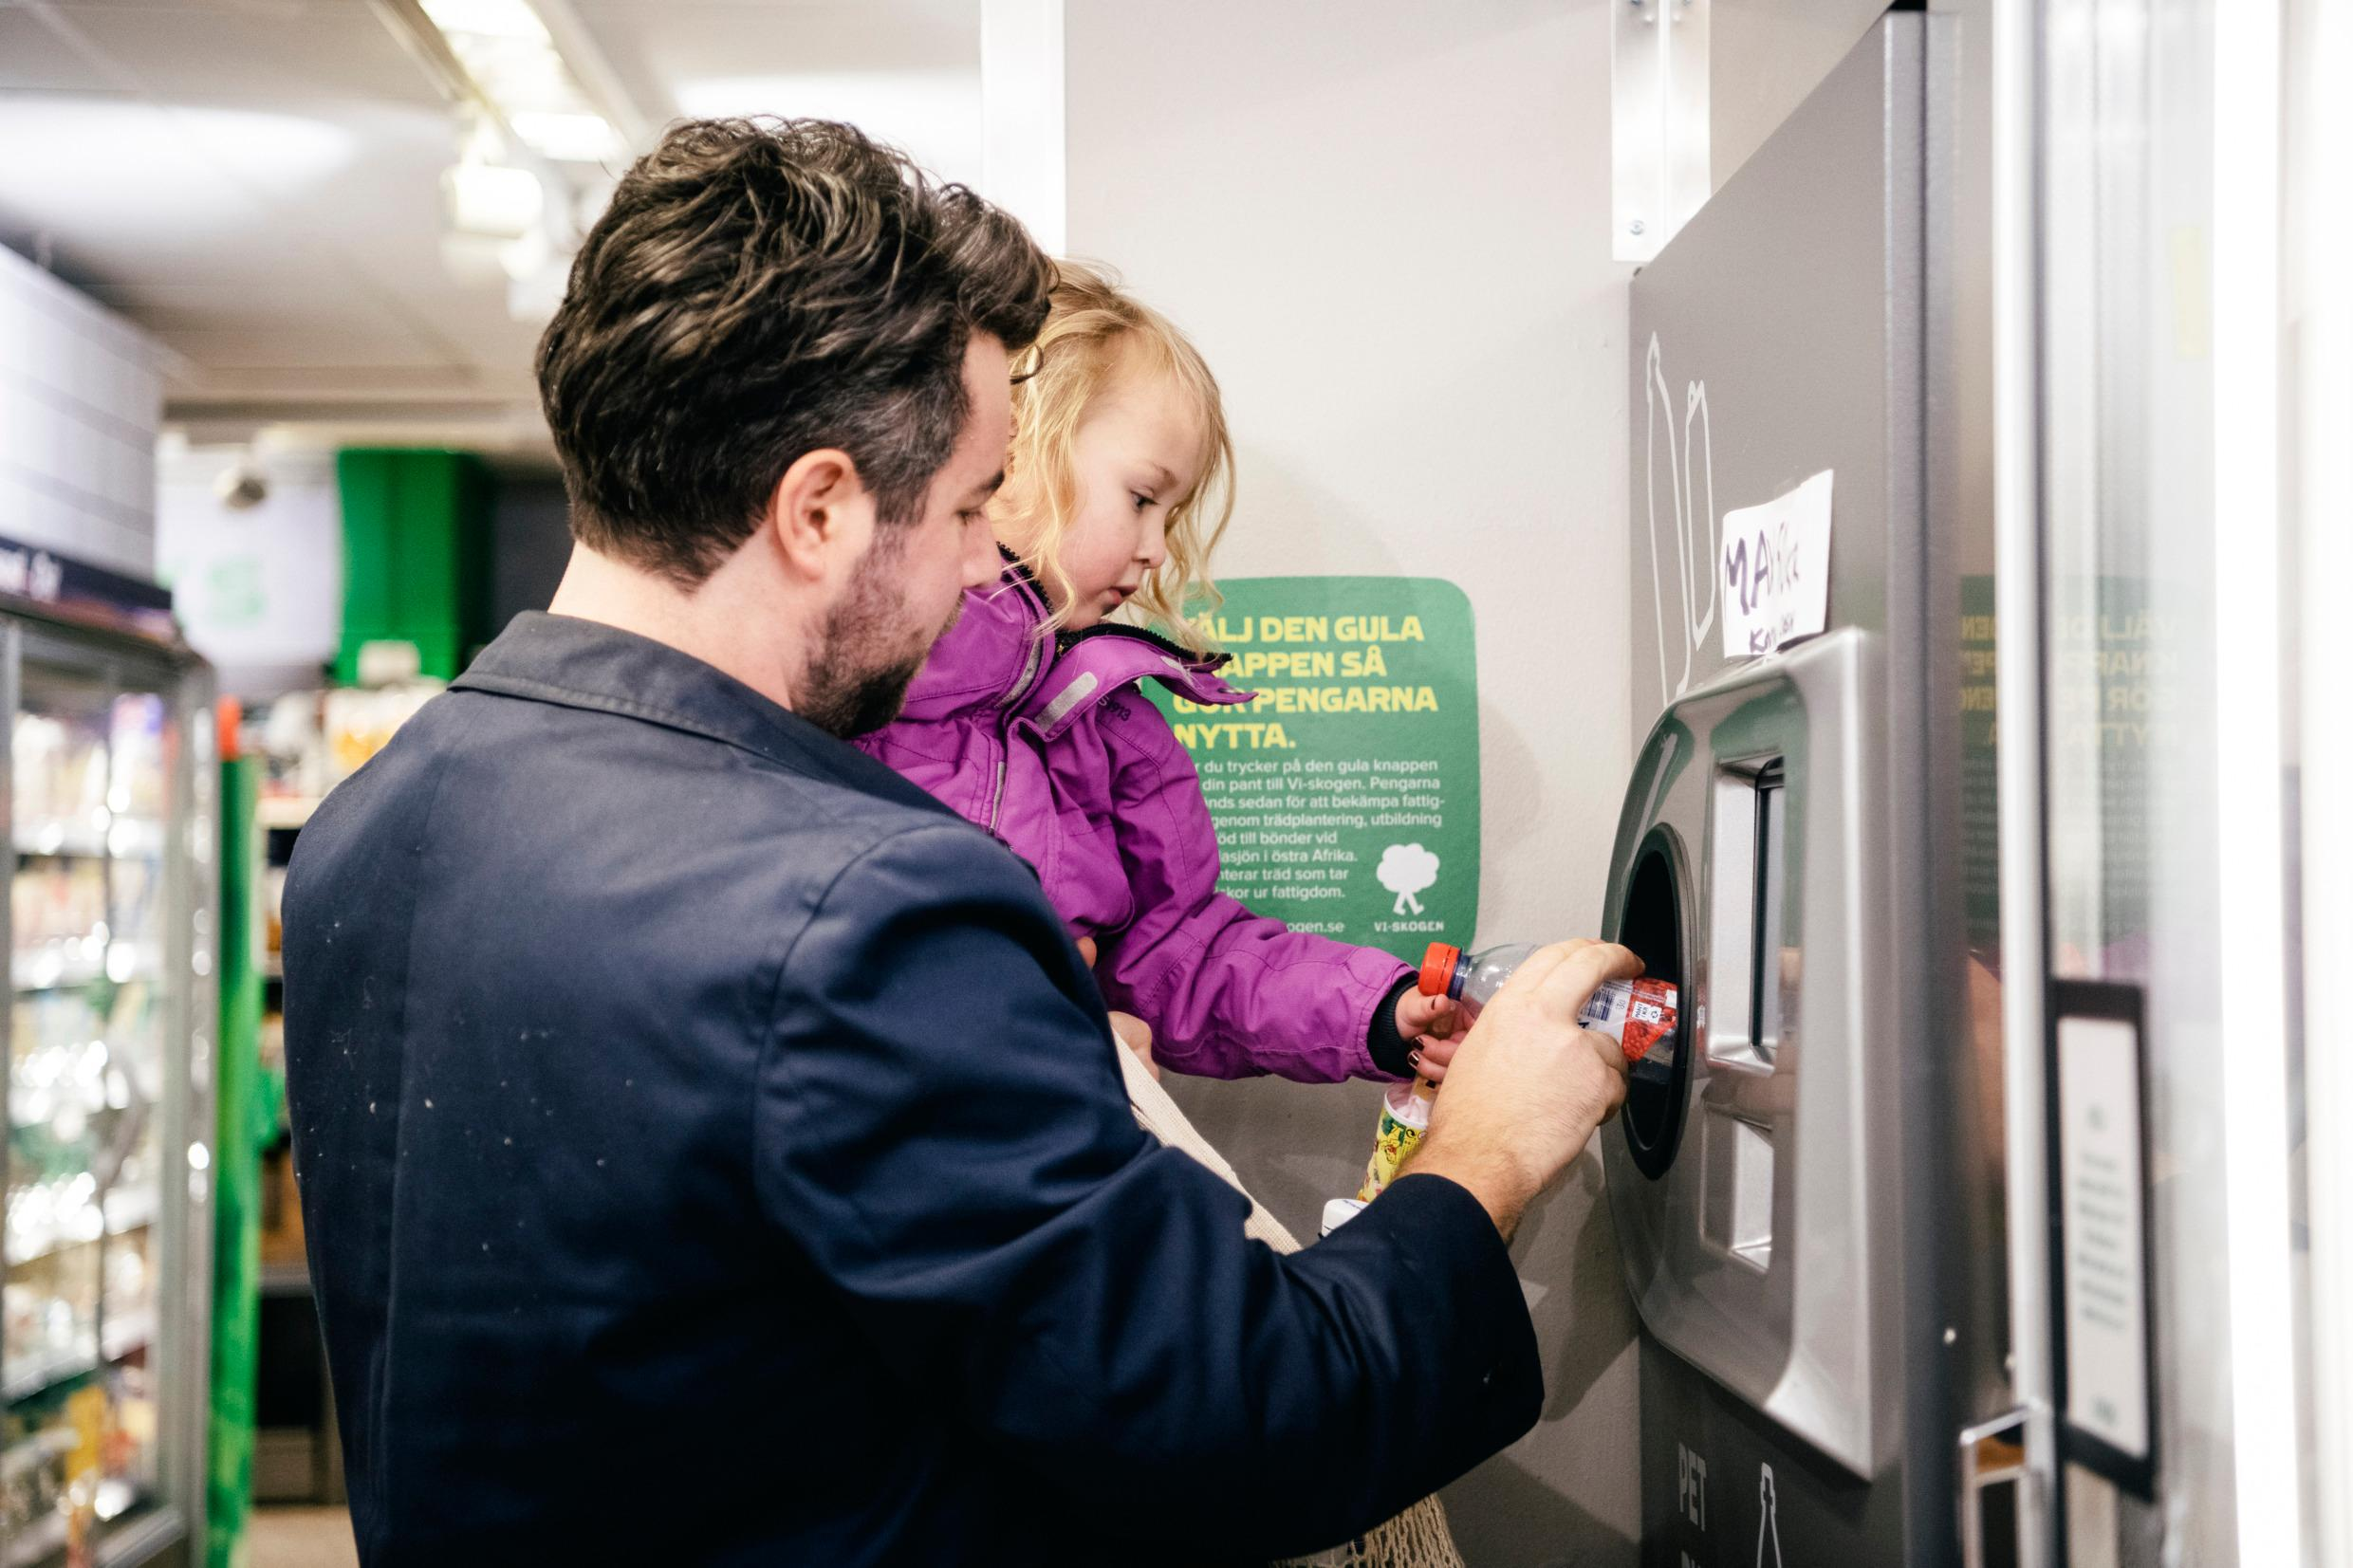 A man is holding a small child. Together they push a plastic bottle into a machine,